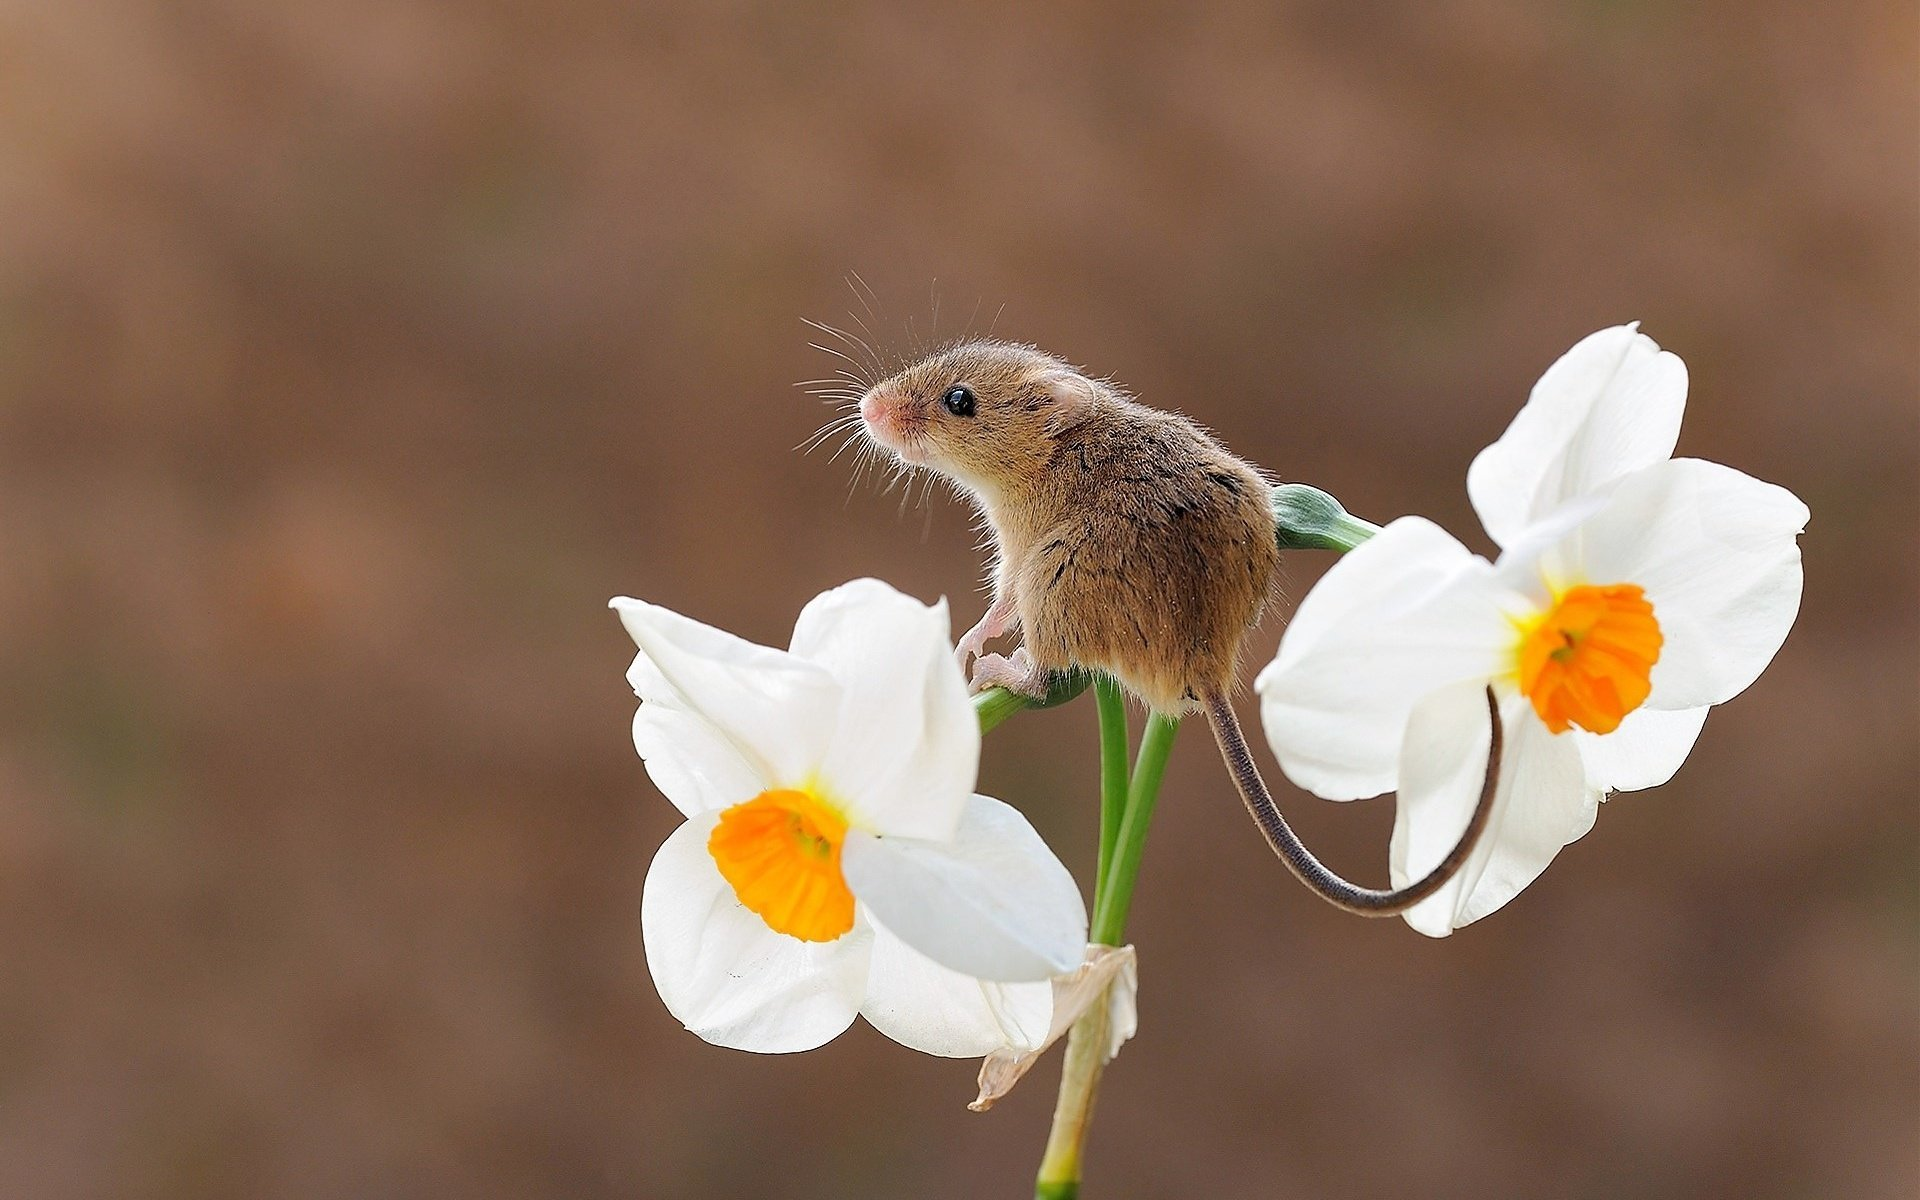 Image: Mouse, baby, gray, sitting, flower, Narcissus